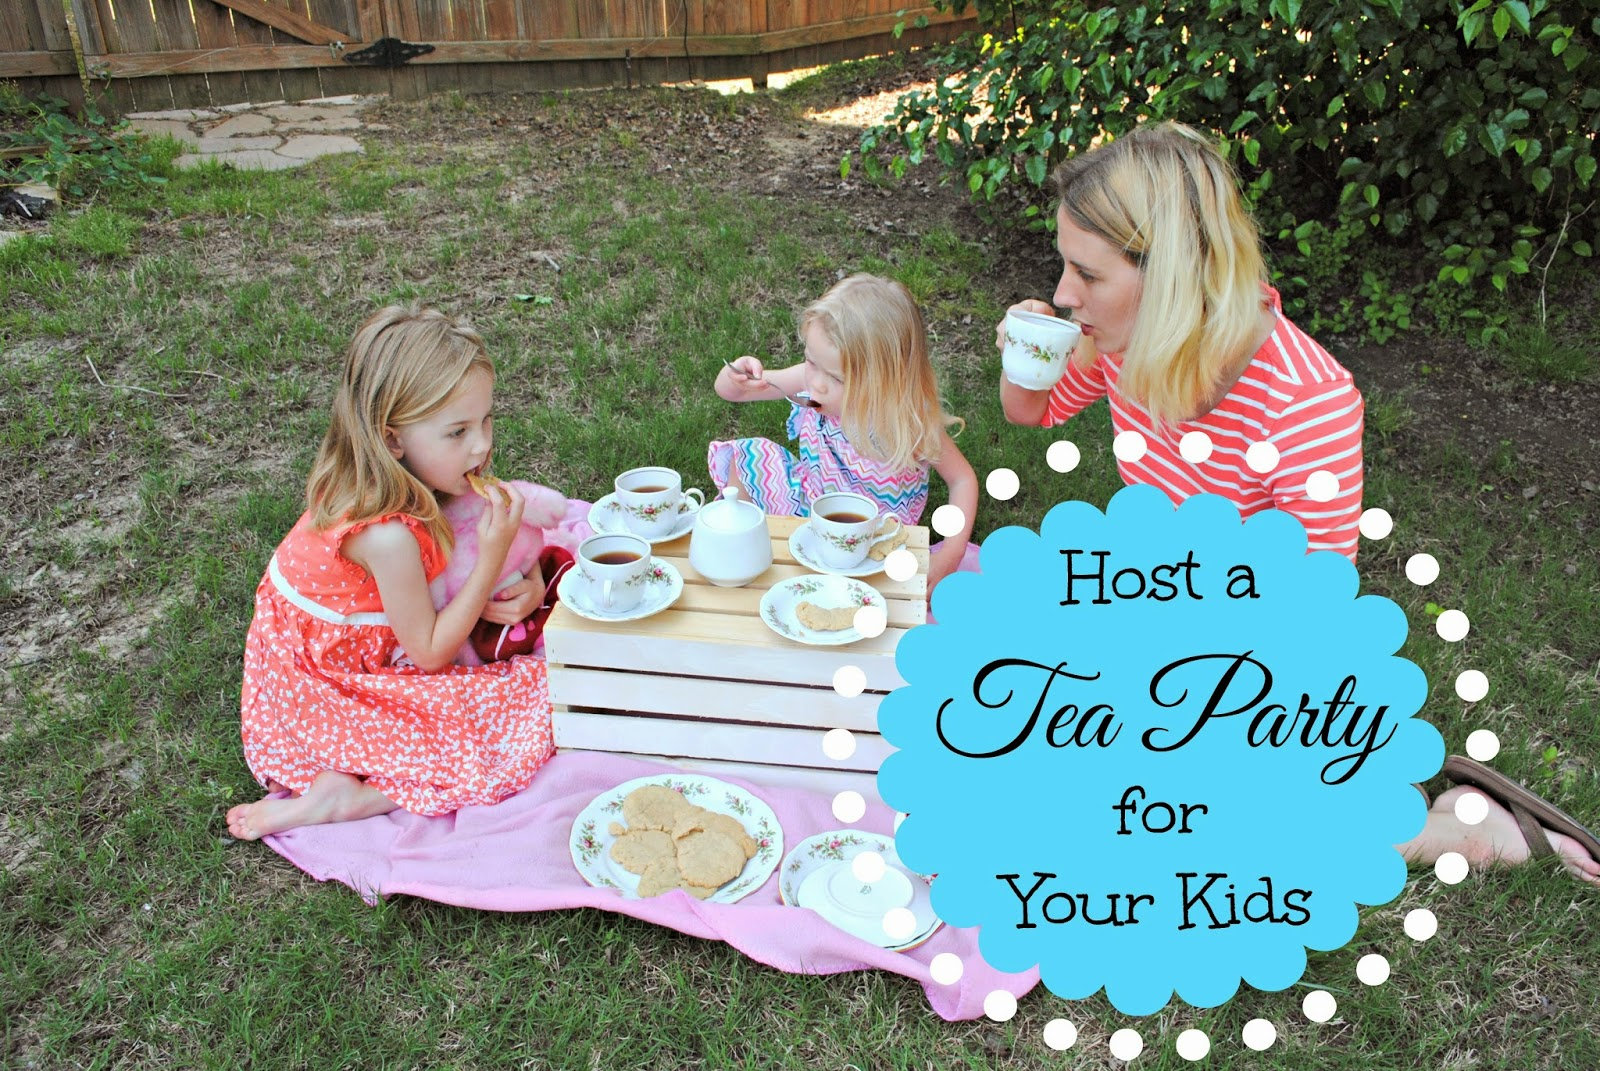 Host a Tea Party for Your Kids